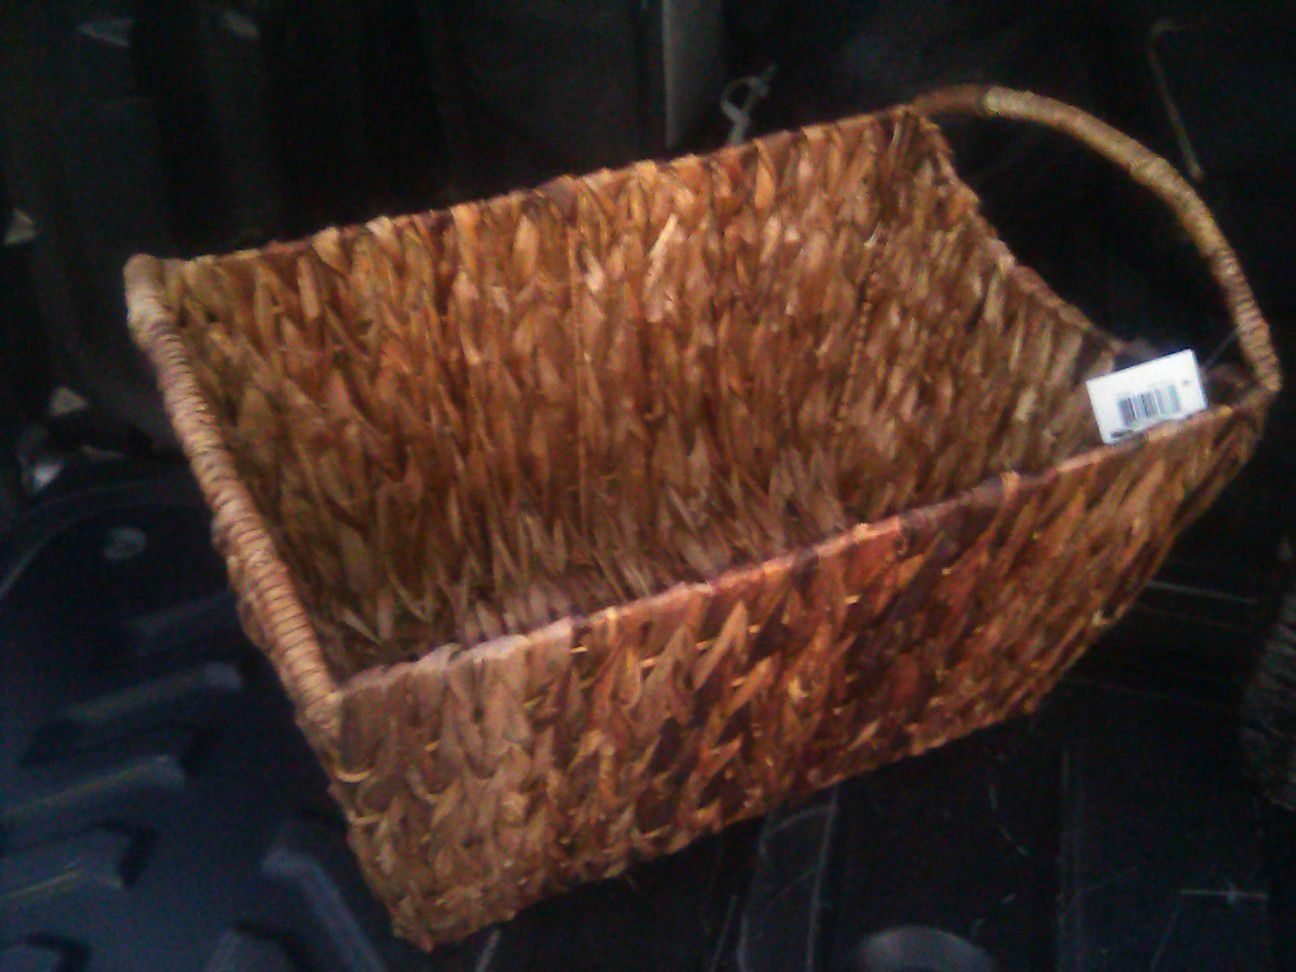 Pair of brand new wicker baskets with handles. Strong, durable for heavy weight